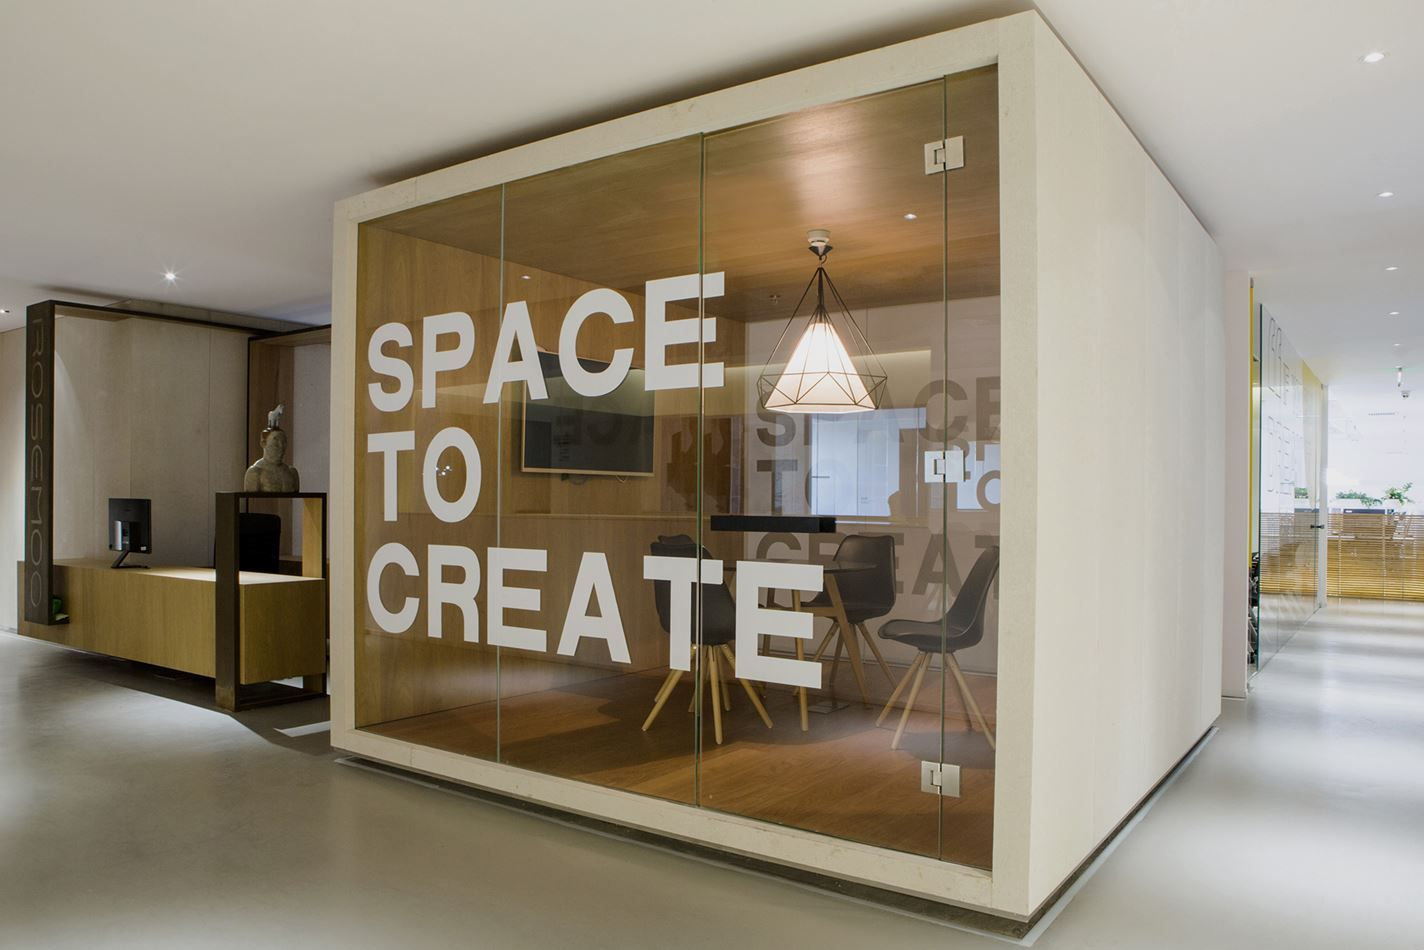 From nature creative interior design of rosemoo office in beijing picture gallery also rh pinterest